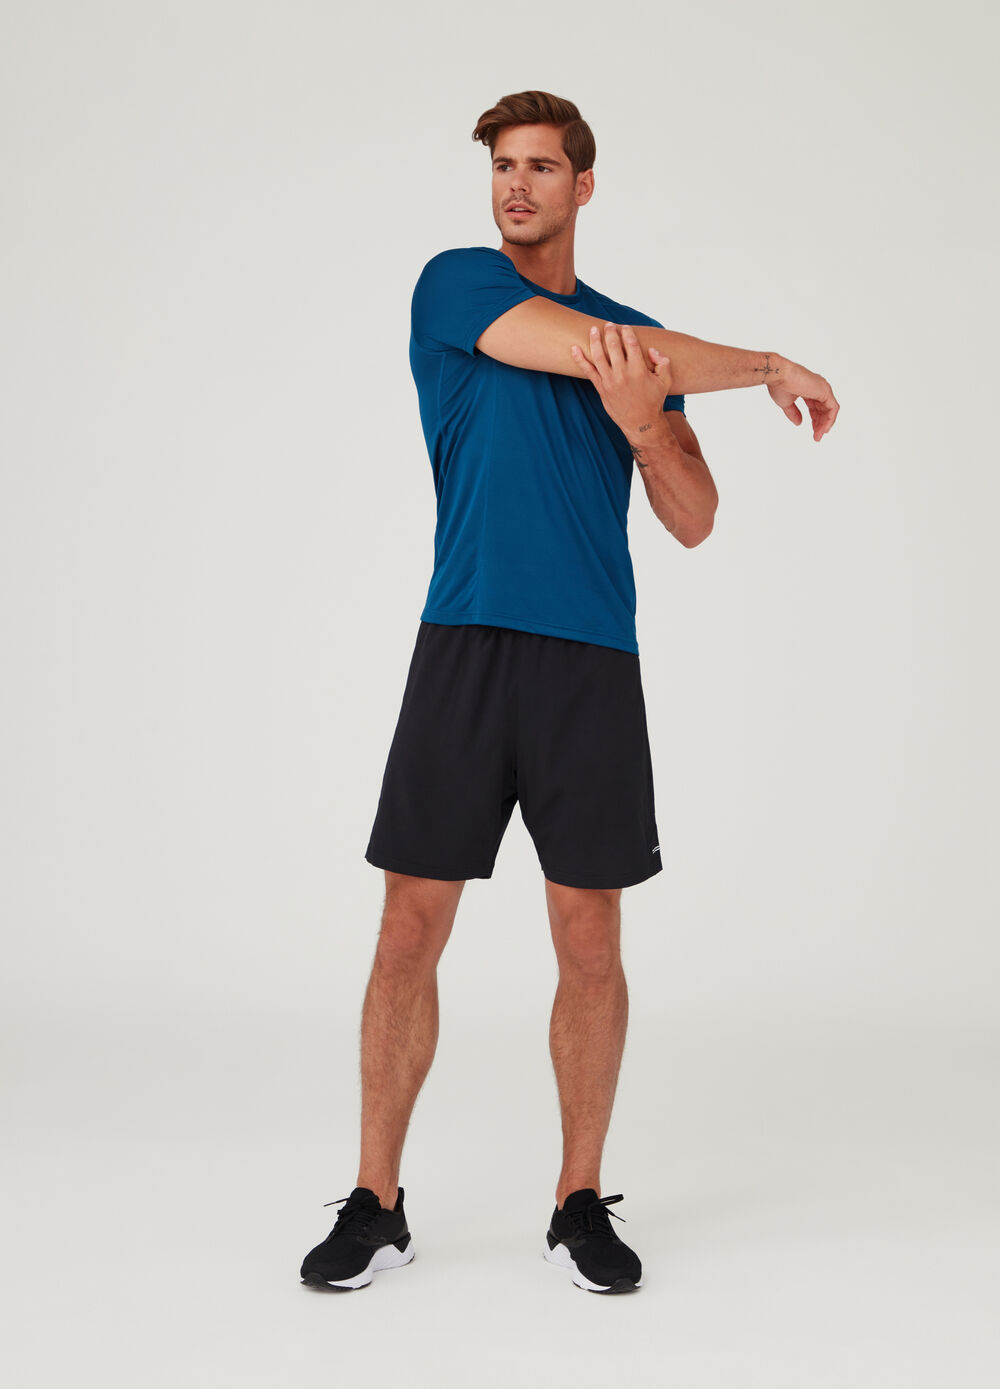 Shorts with openwork insert and splits